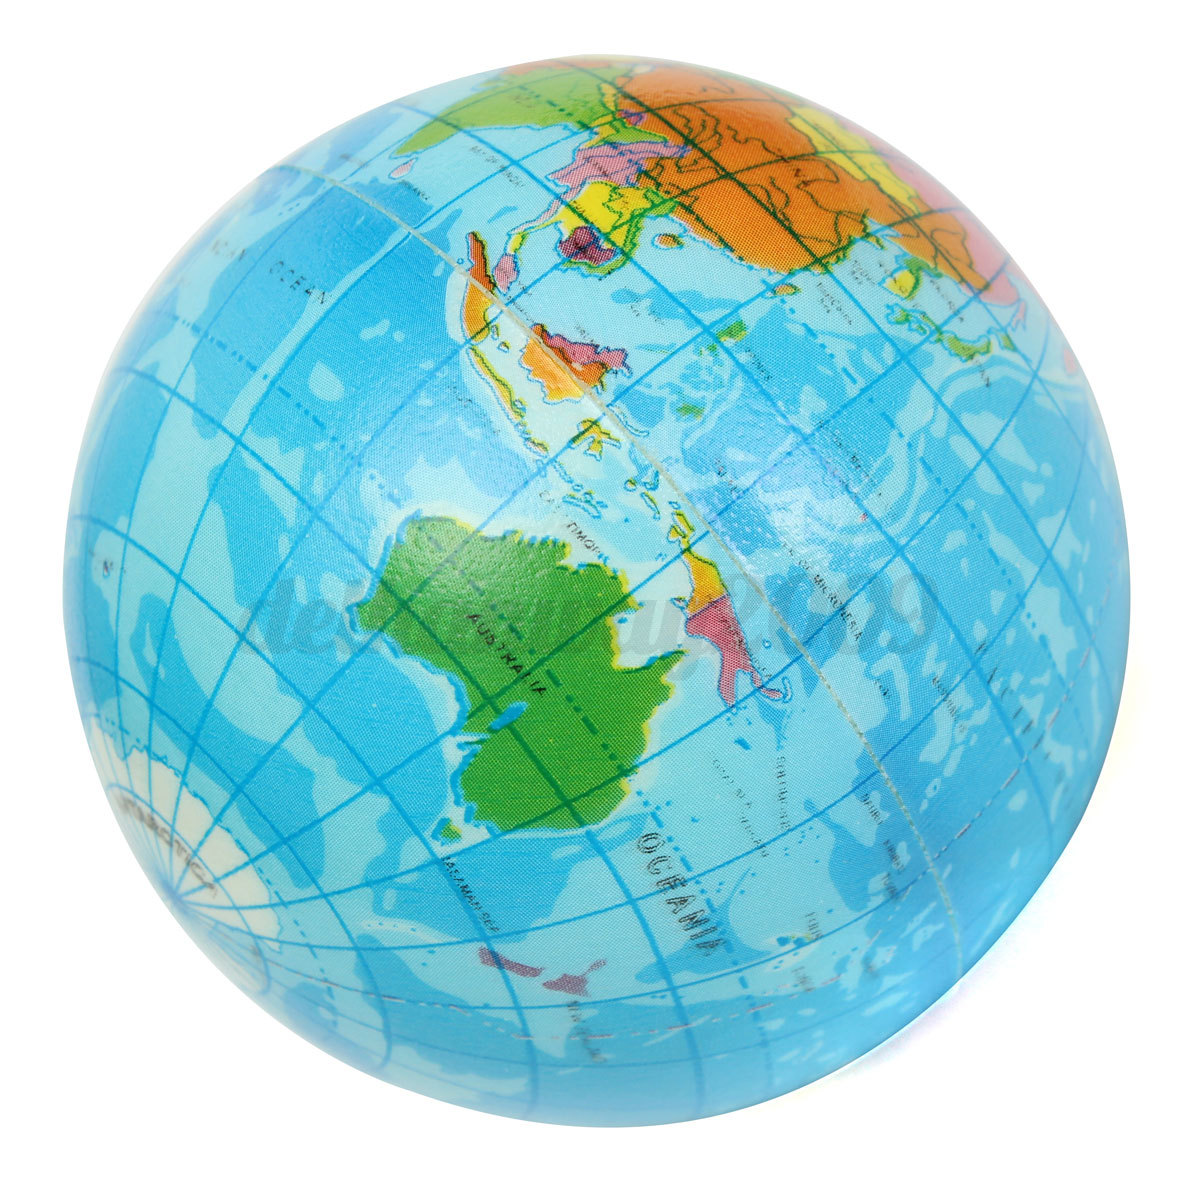 World map globe toy foam earth stress relief ball geography kid image is loading world map globe toy foam earth stress relief gumiabroncs Choice Image